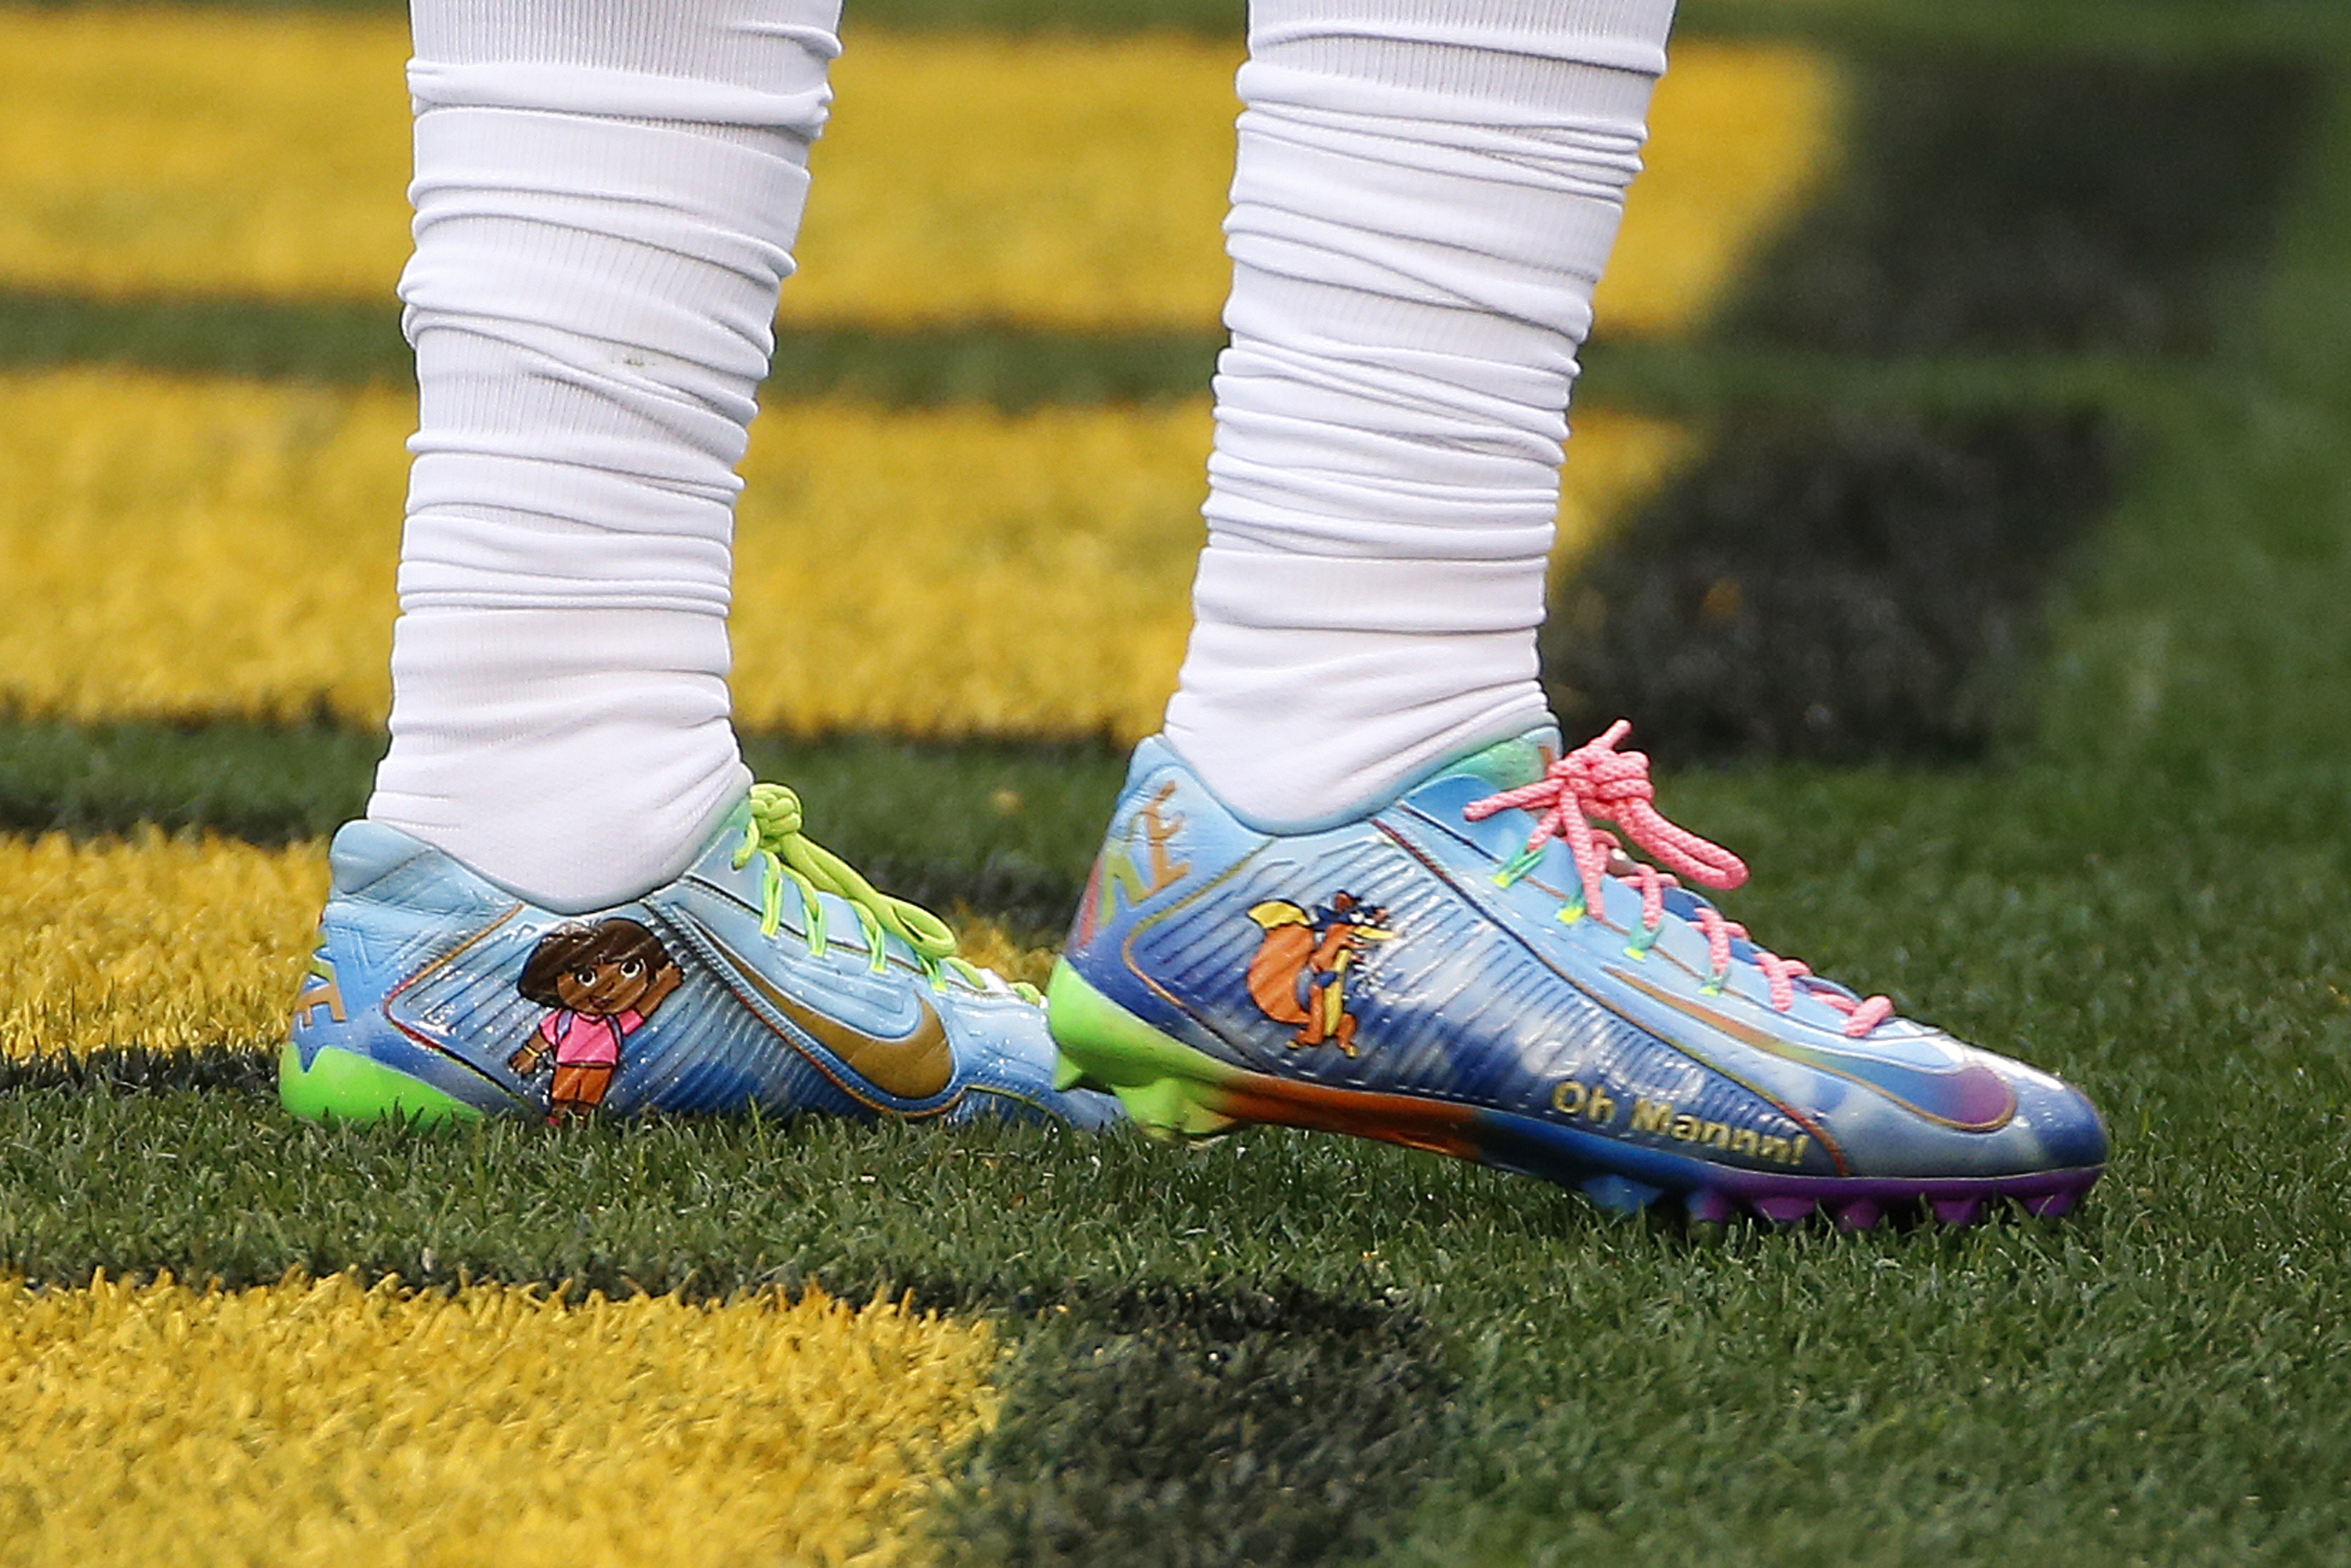 cf9509876 New York Giants wide receiver Odell Beckham Jr. wears cleats supporting the  Make-A-Wish Foundation during warm-ups before a game against the Pittsburgh  ...